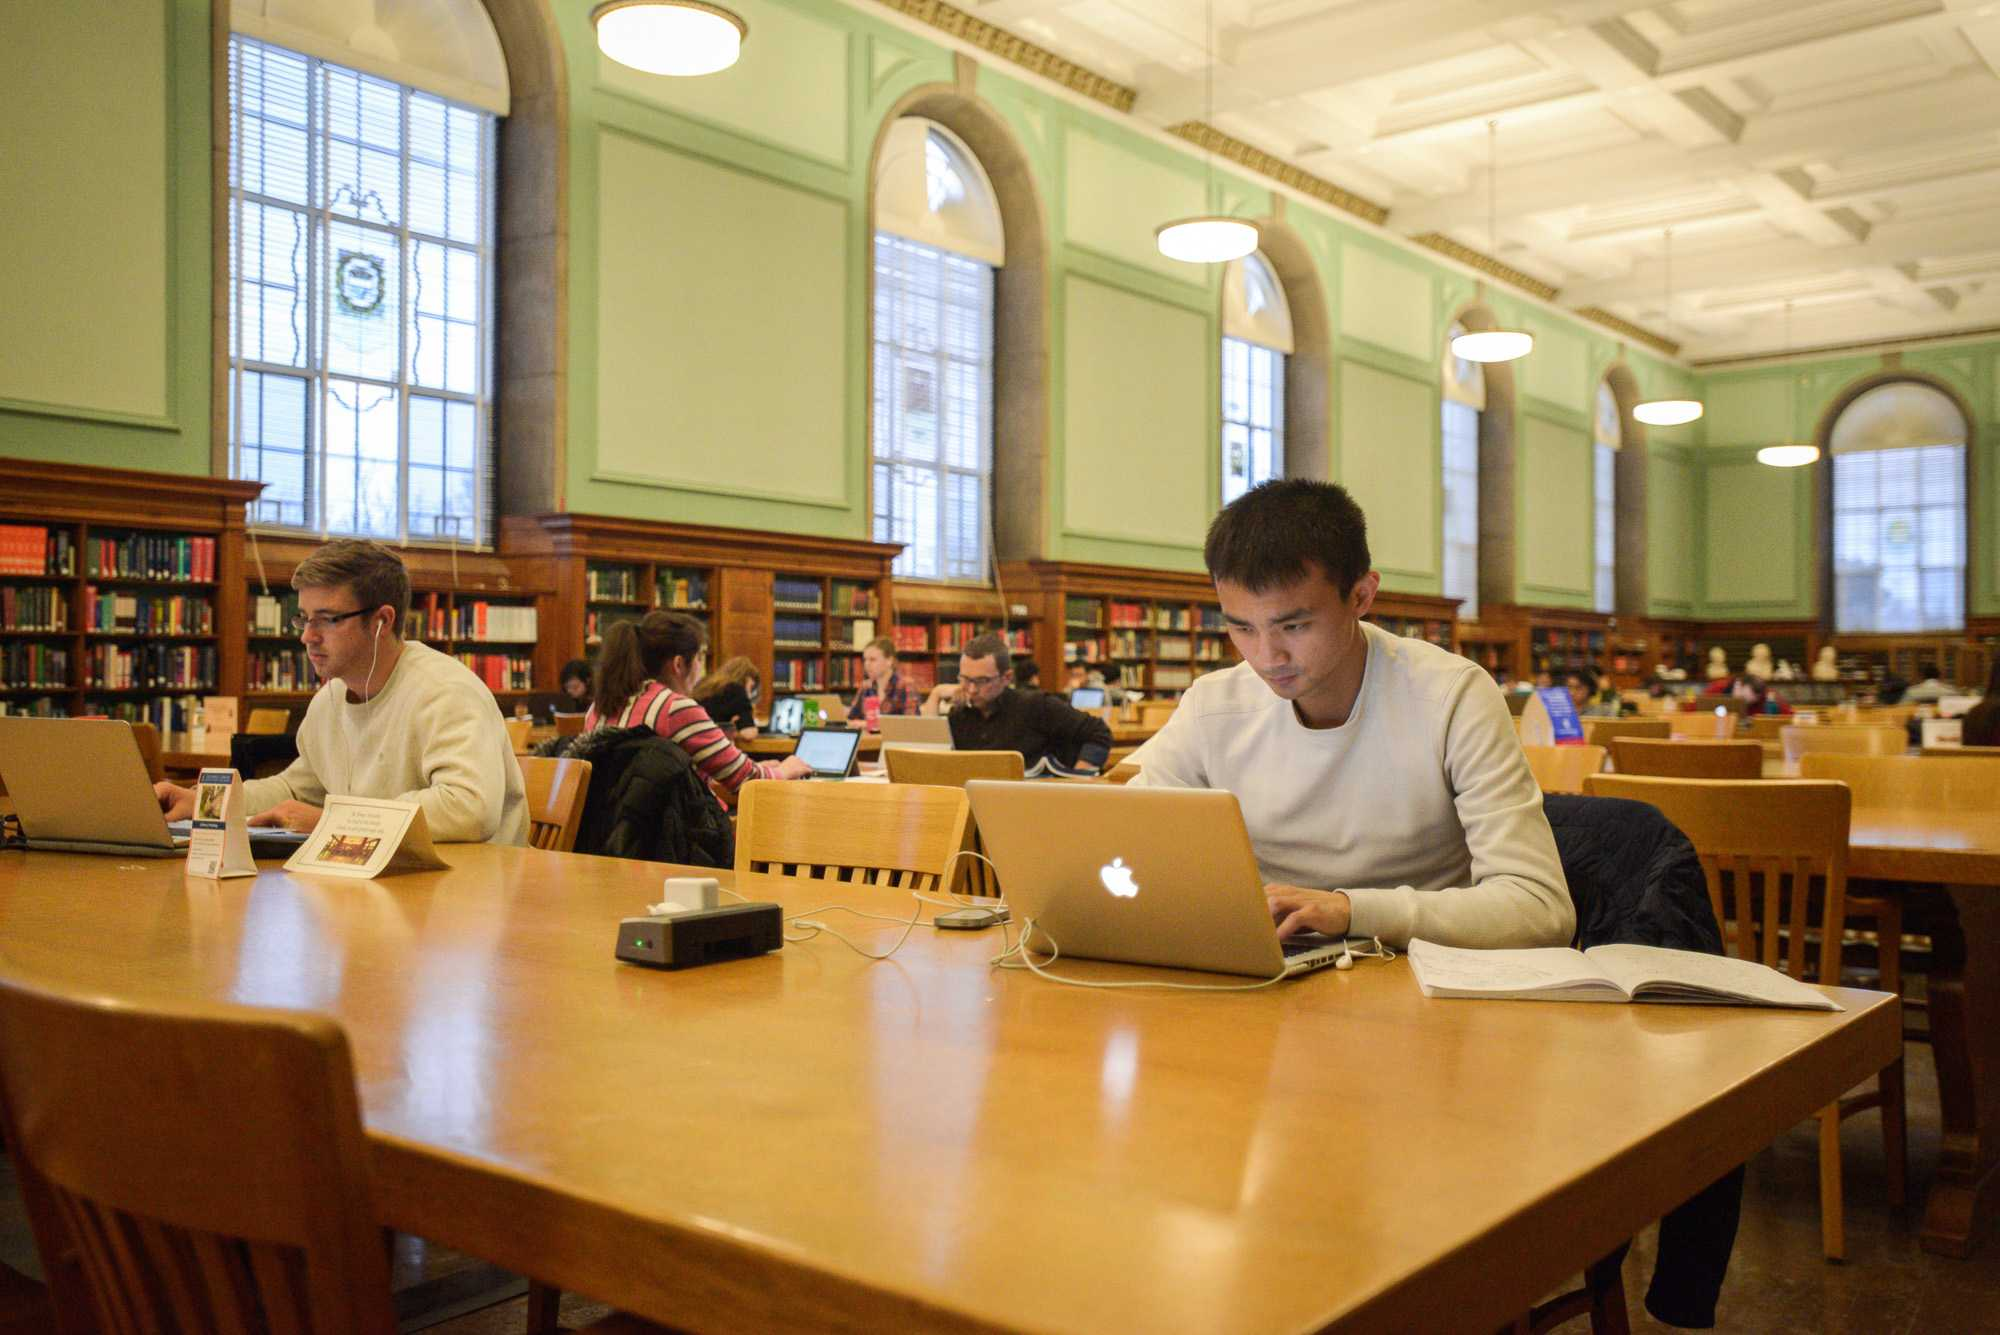 Huijing Cai, graduate in Business, studies in the Main Library on Sunday, February 15, 2015.